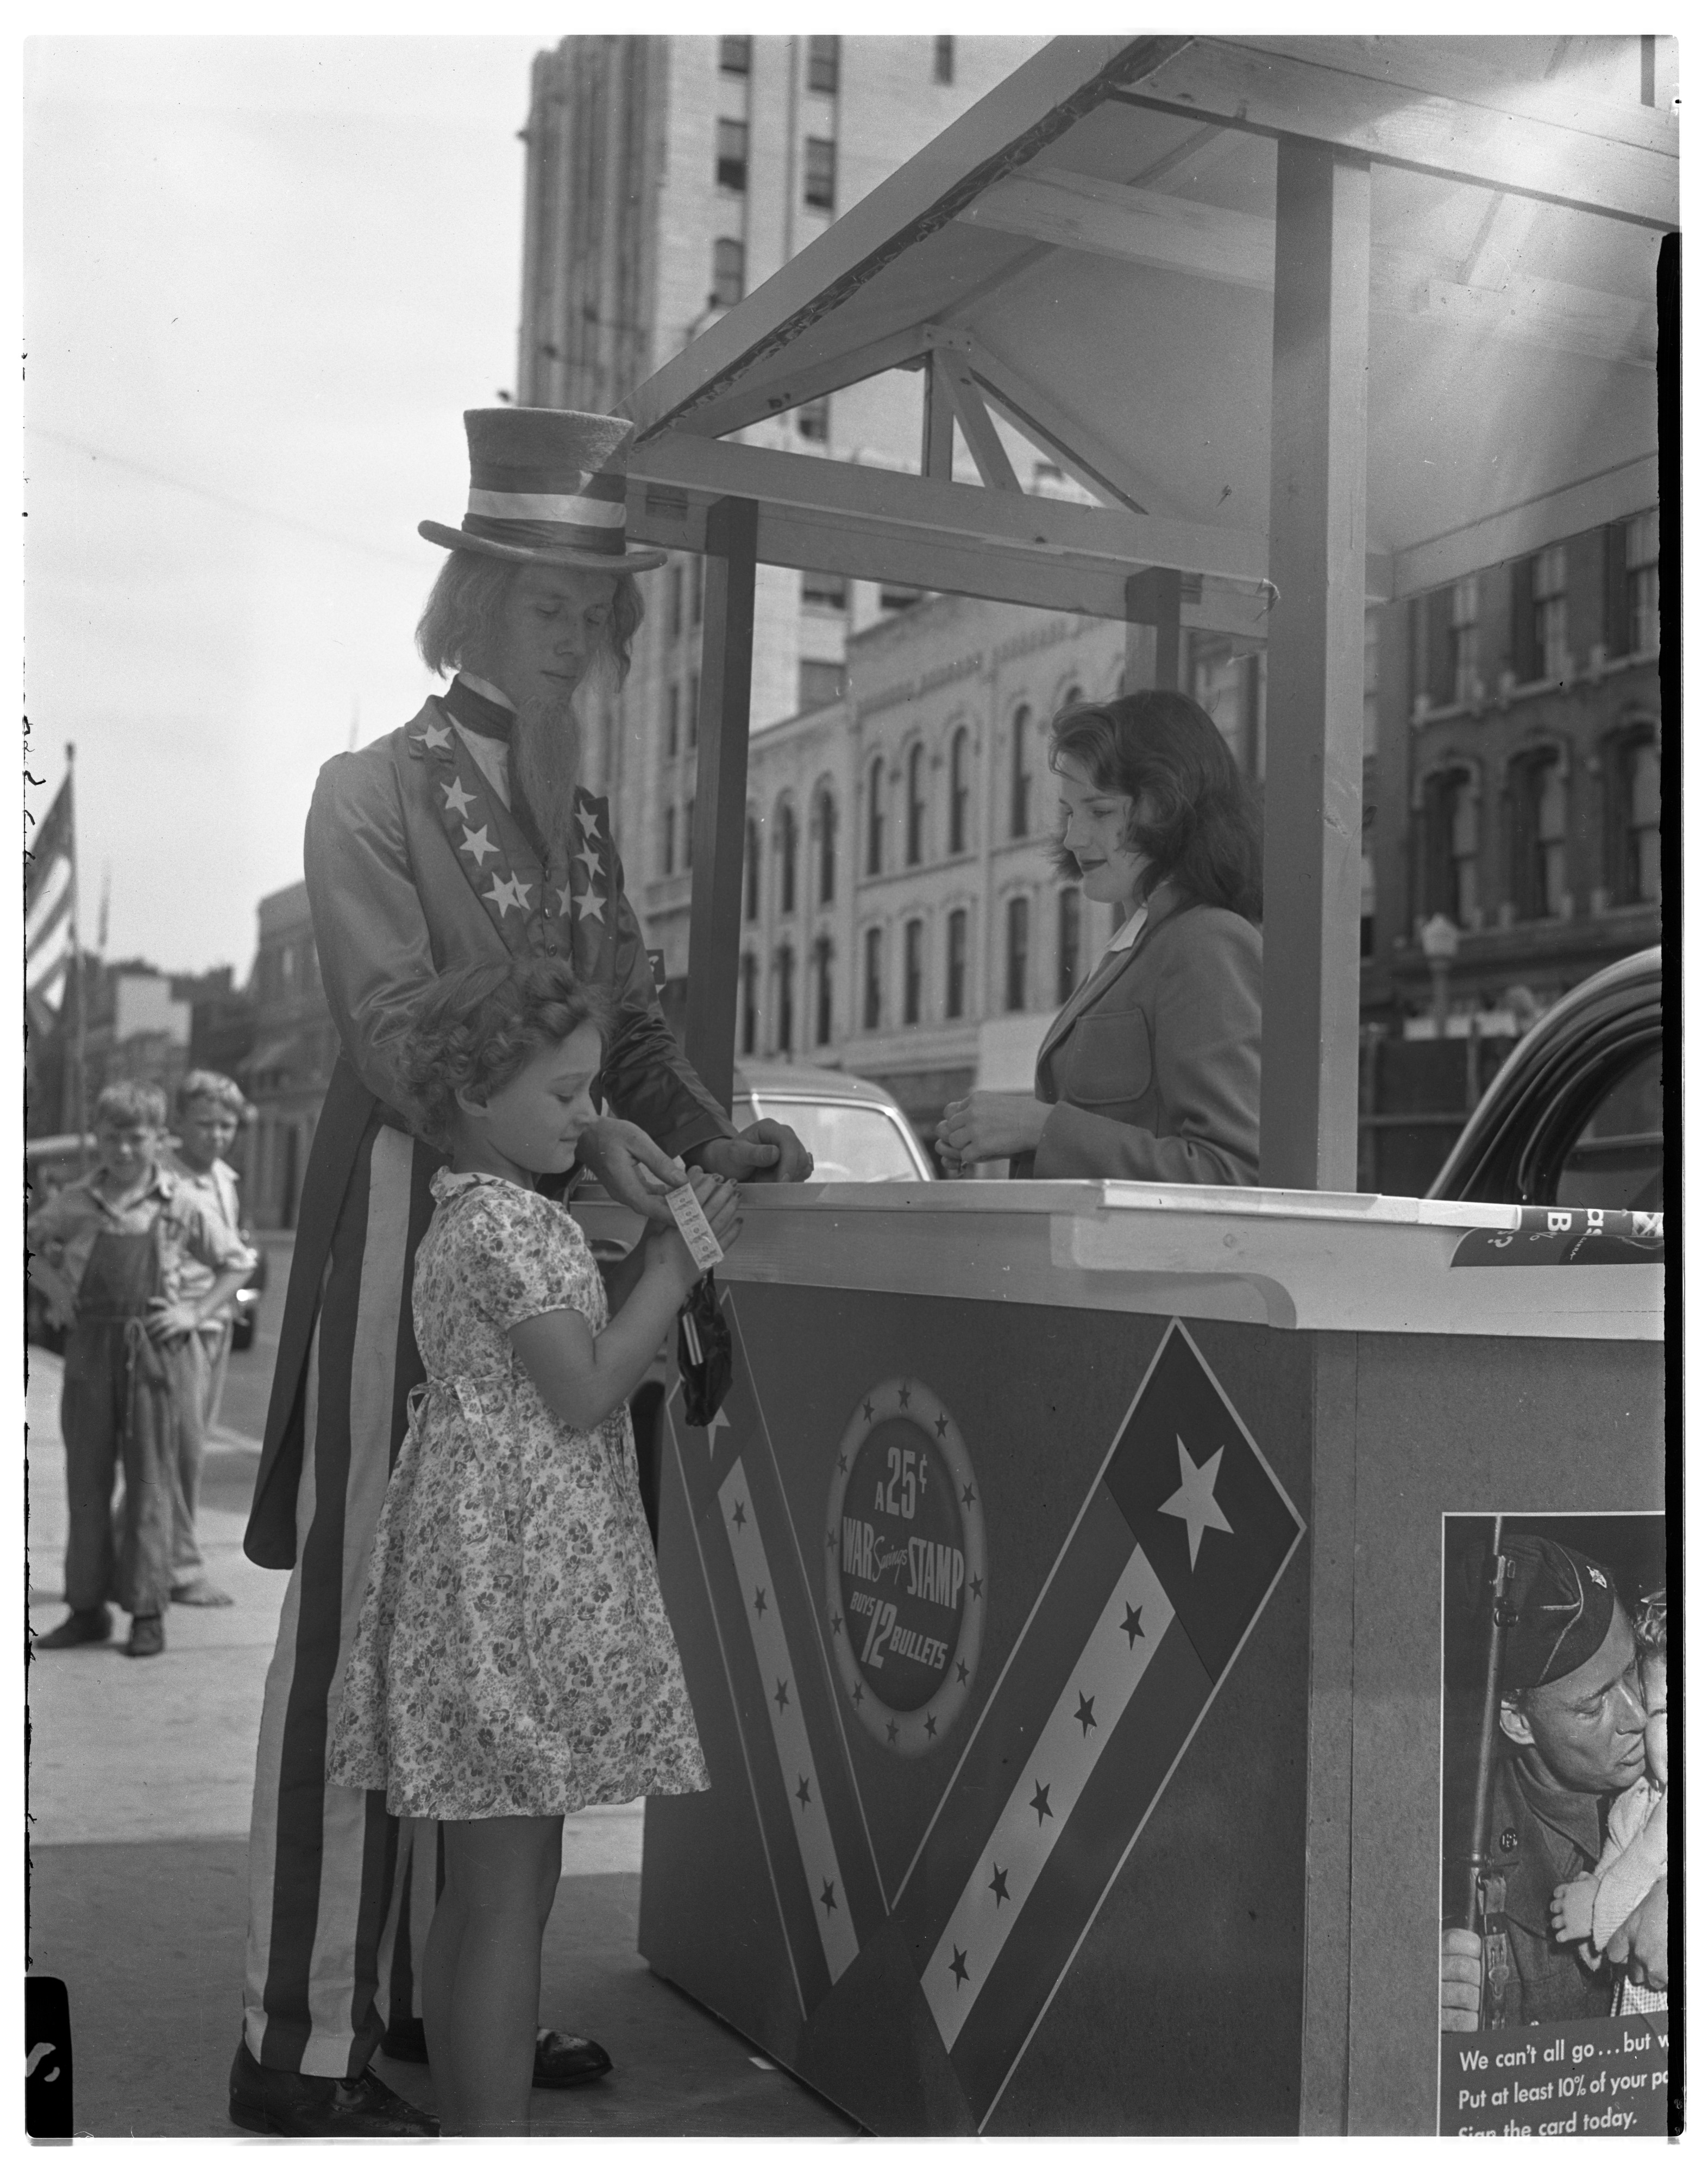 """Uncle Sam"" and Cunningham Drugs employee aid bond sale, July 1942 image"